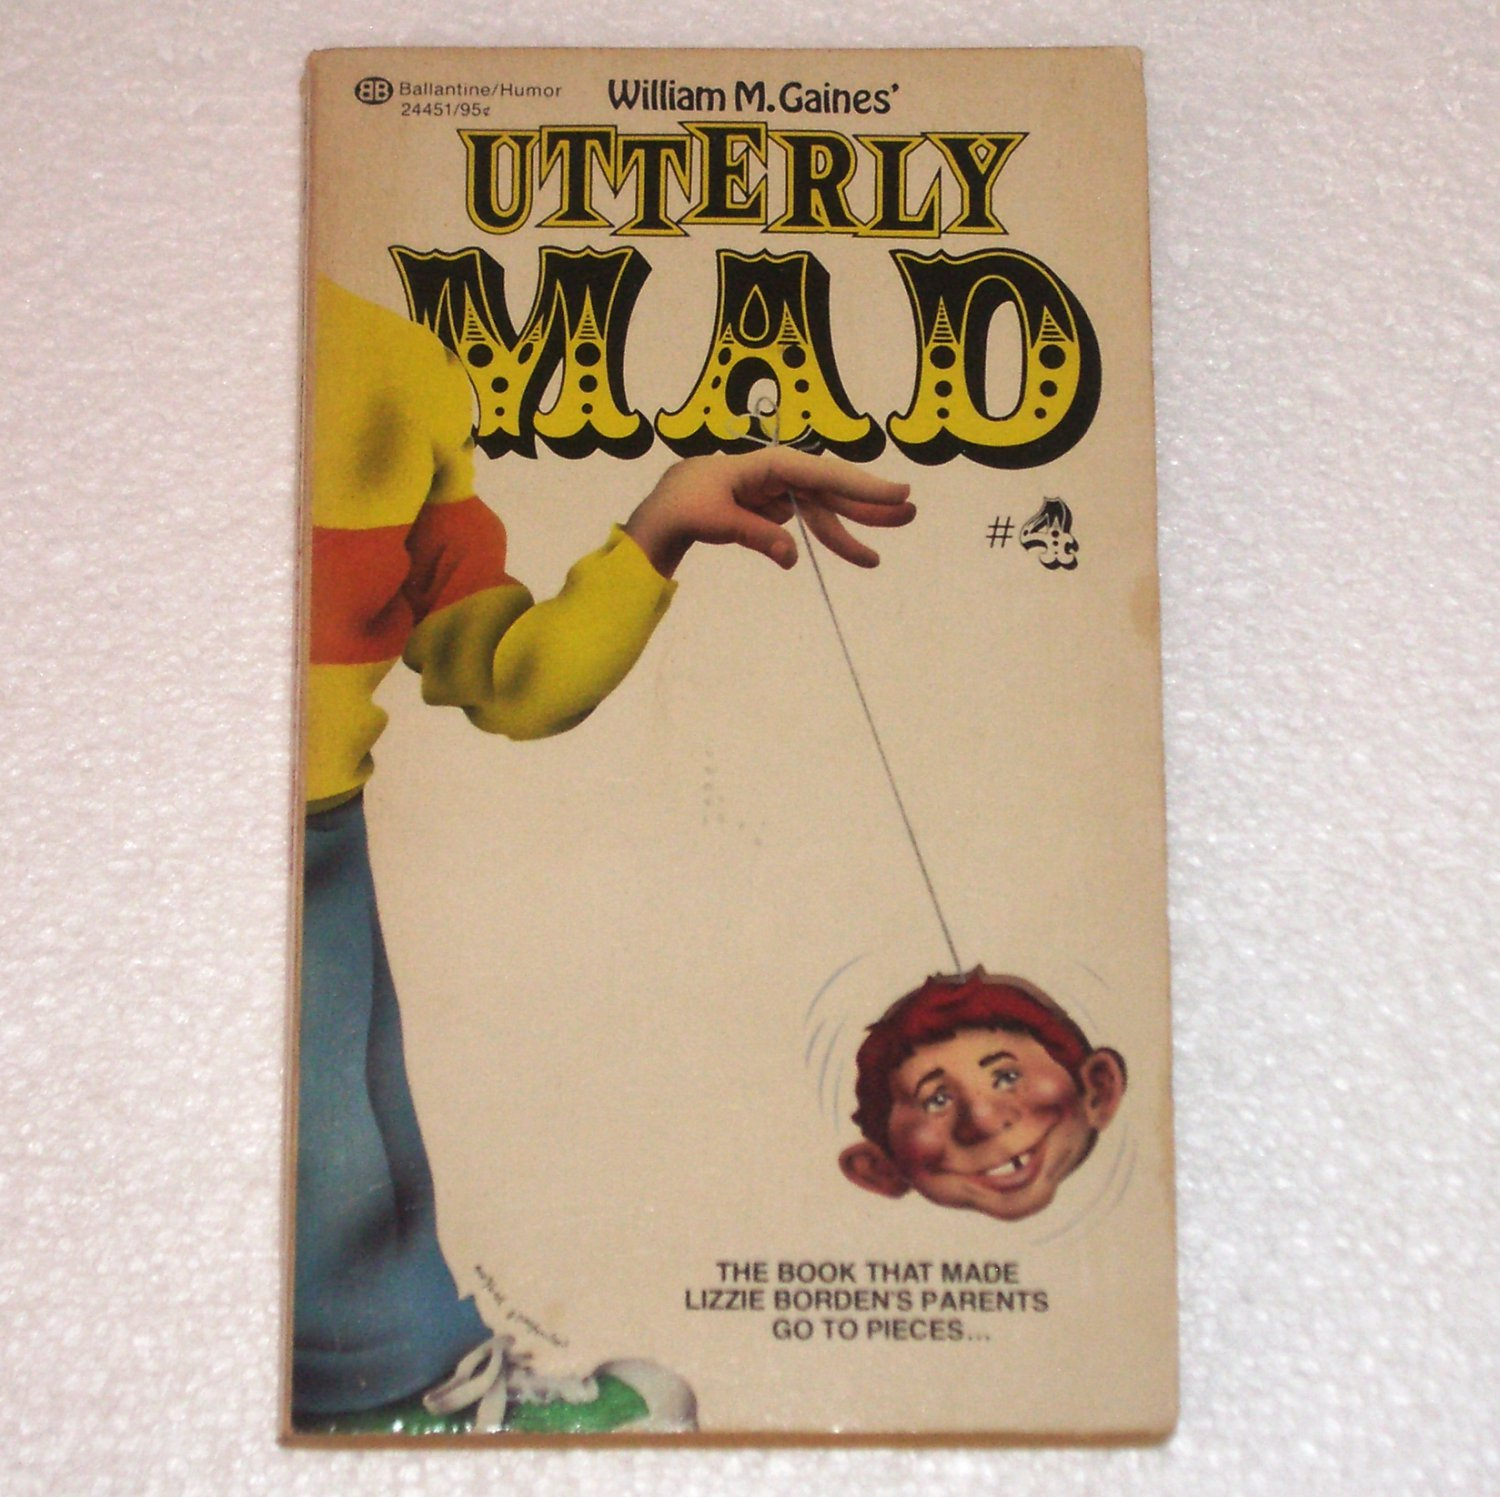 Utterly Mad # 4 1963 Ballantine 24451 William H. Gaines